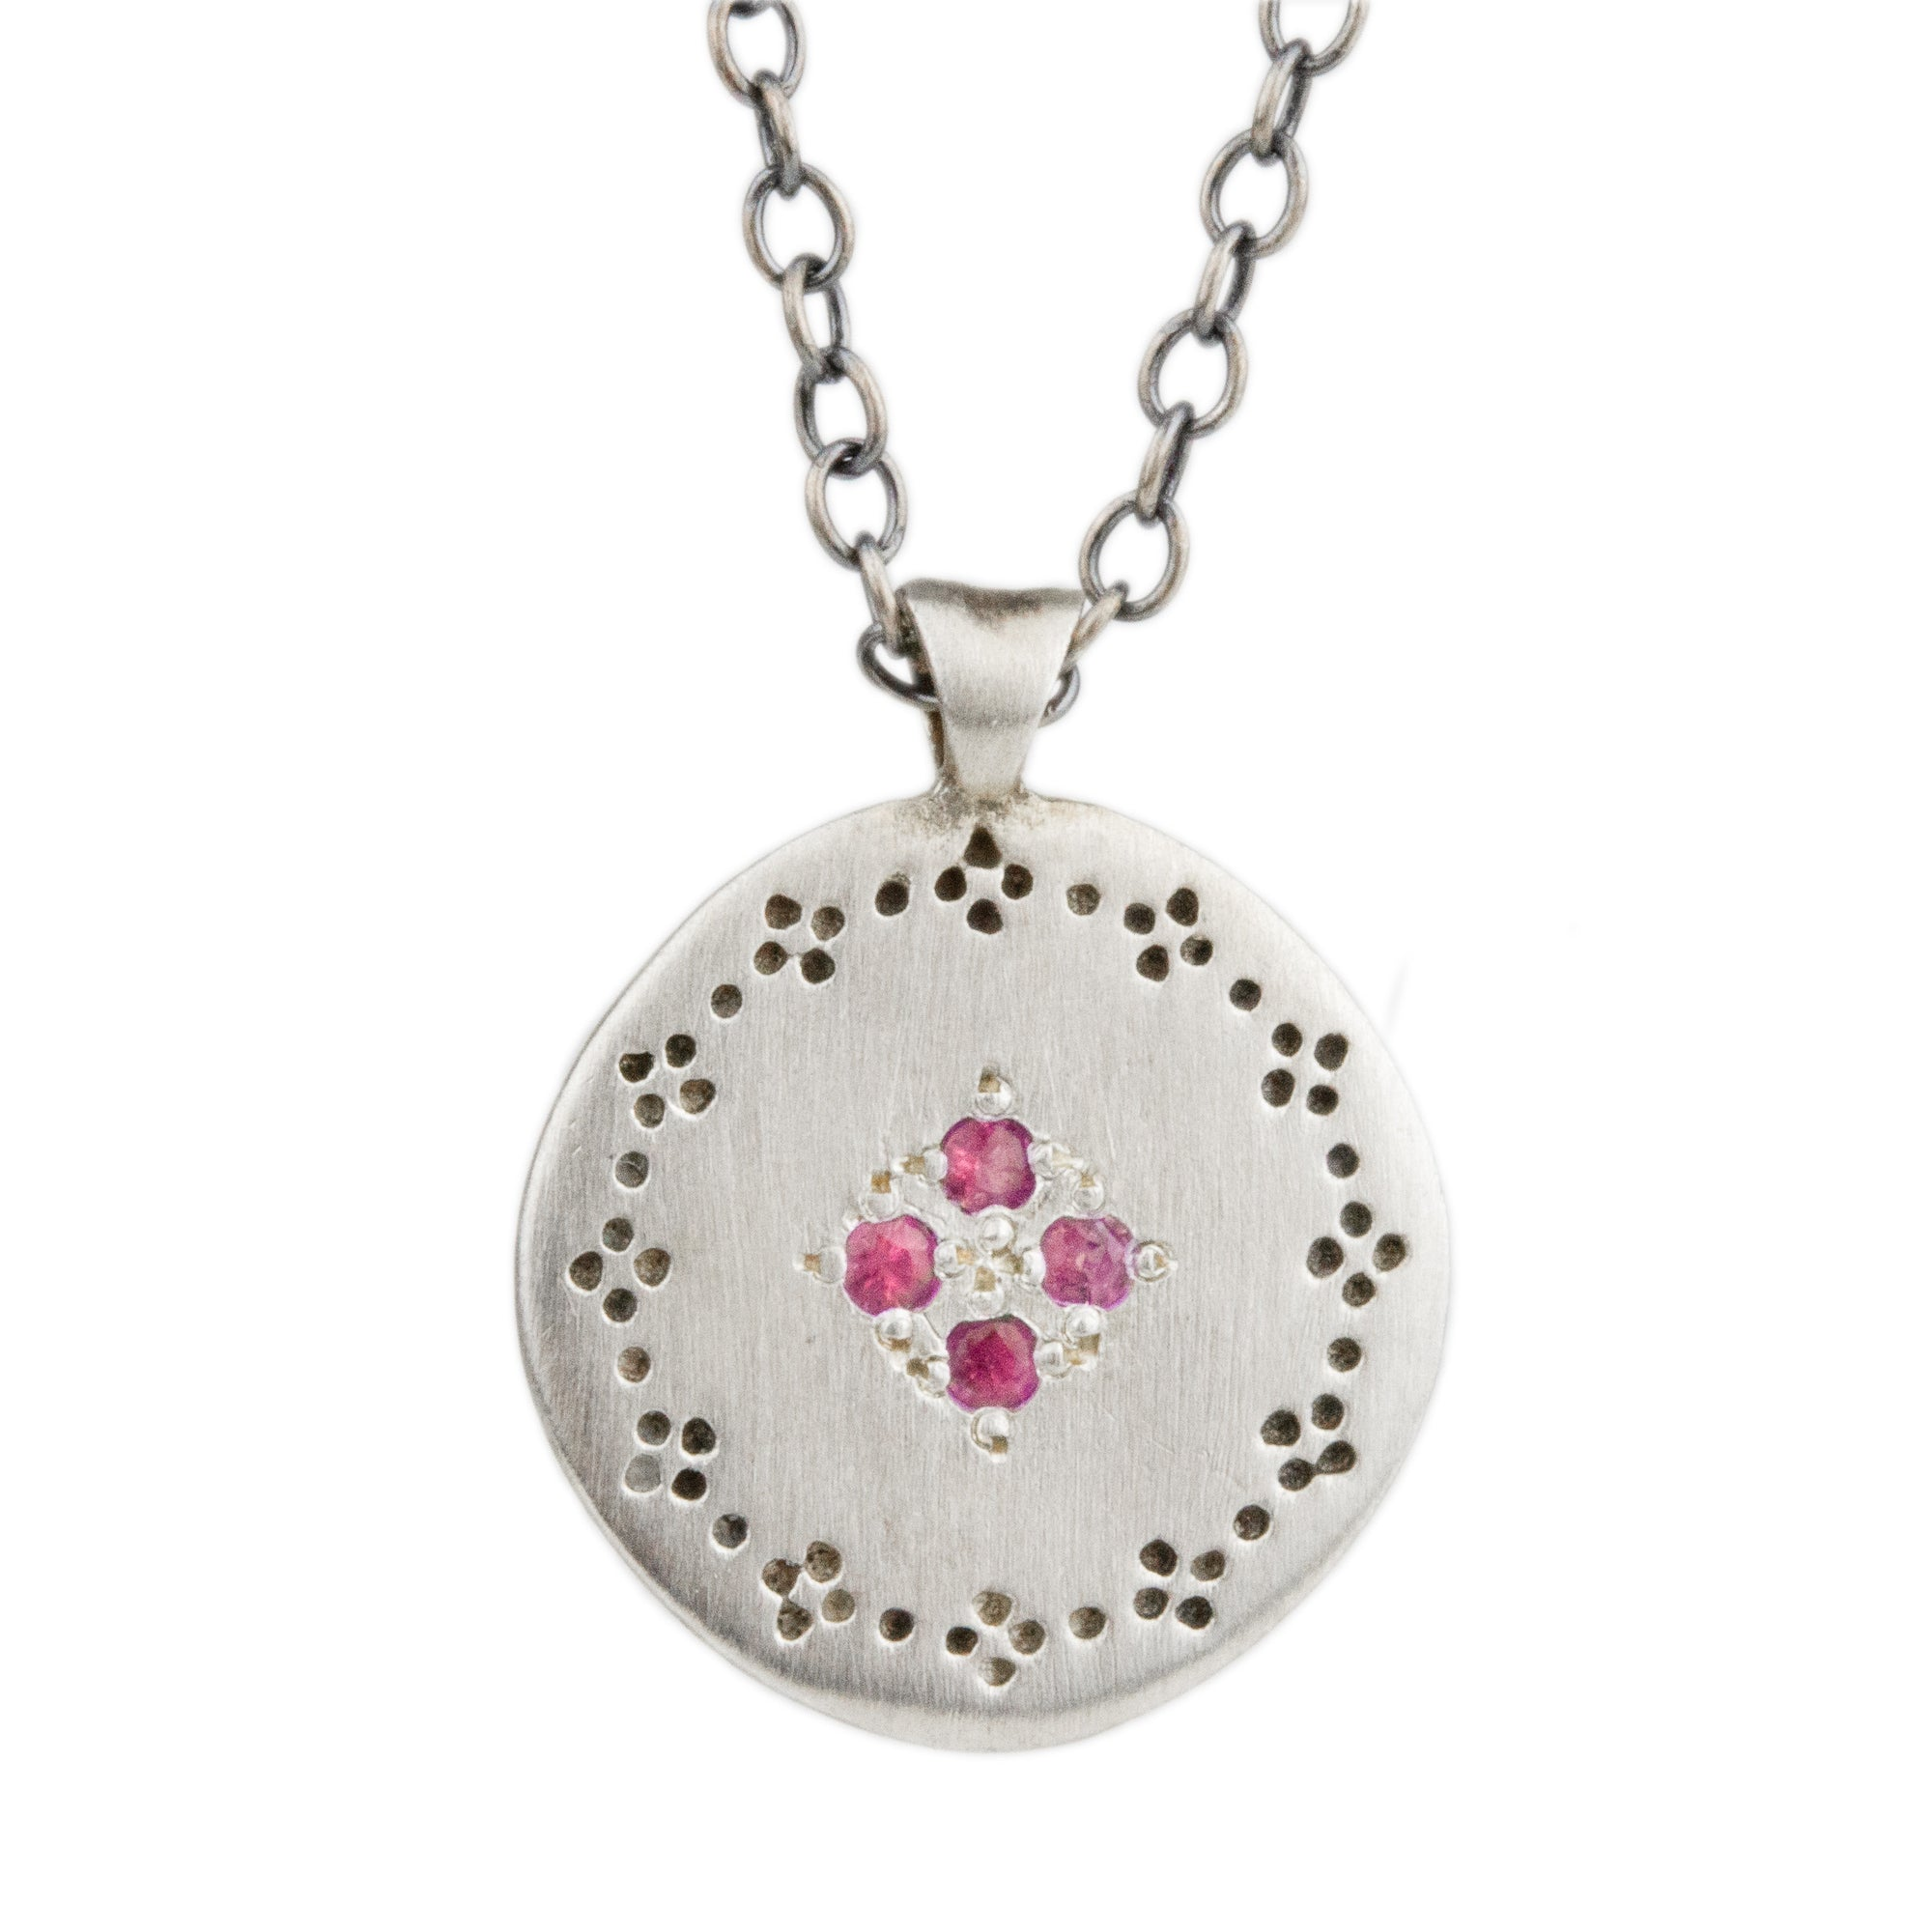 Four Star Pink Sapphire Necklace